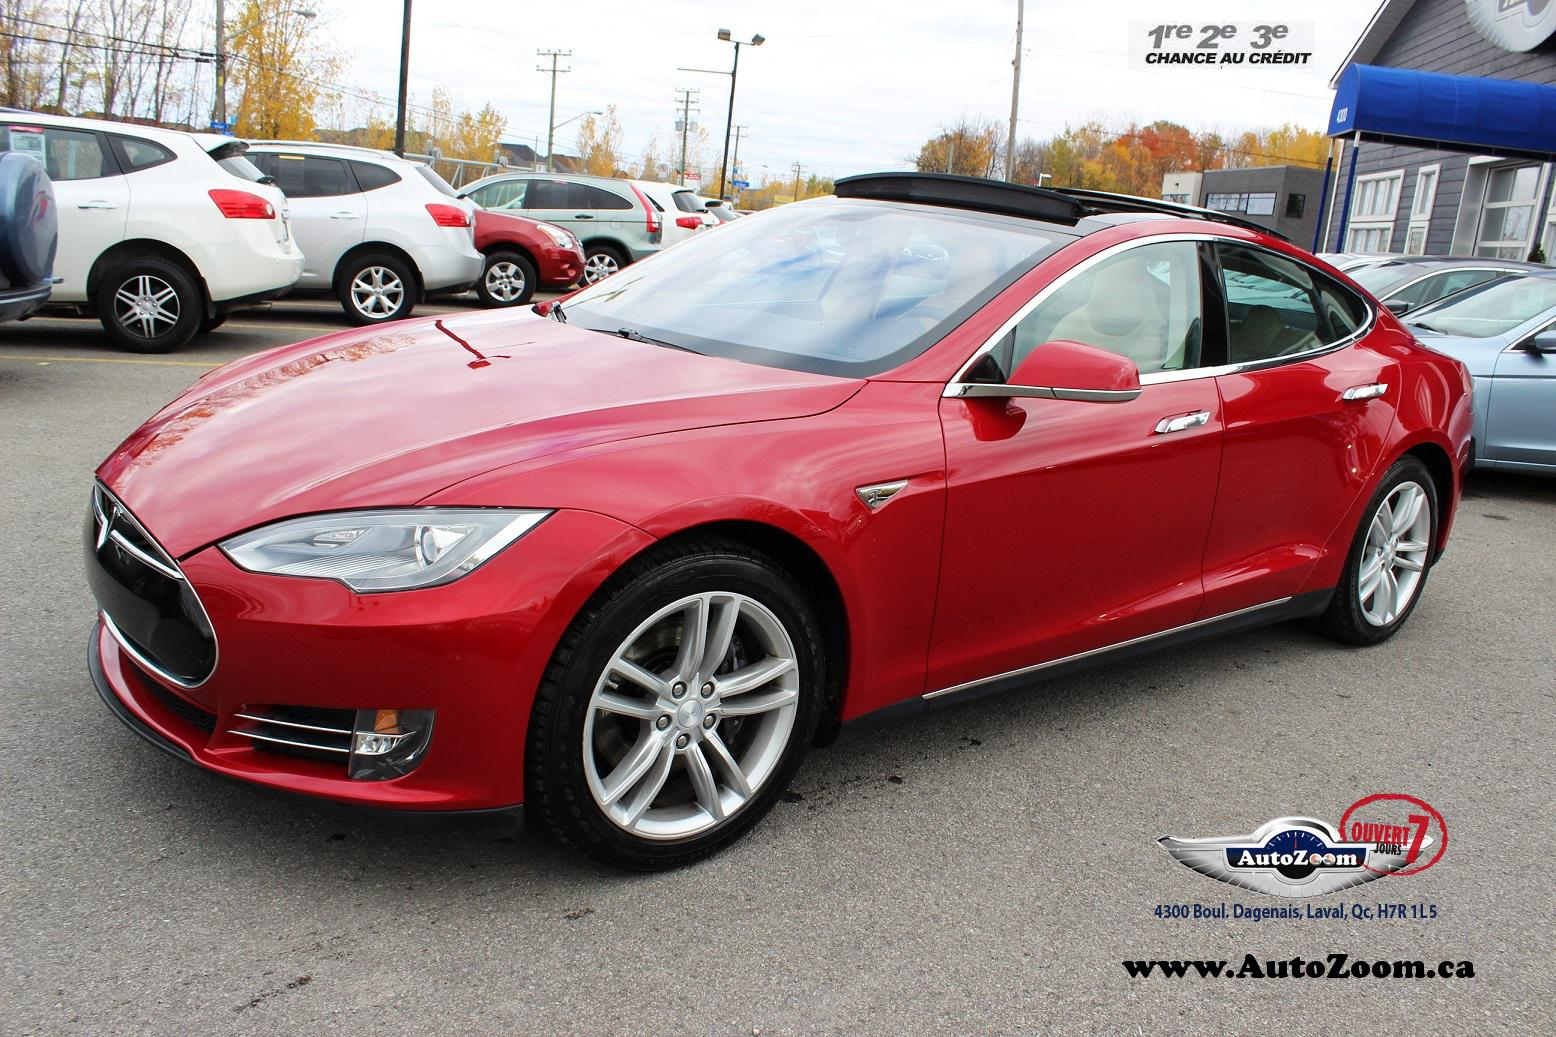 tesla model s 2013 occasion vendre laval chez autozoom. Black Bedroom Furniture Sets. Home Design Ideas